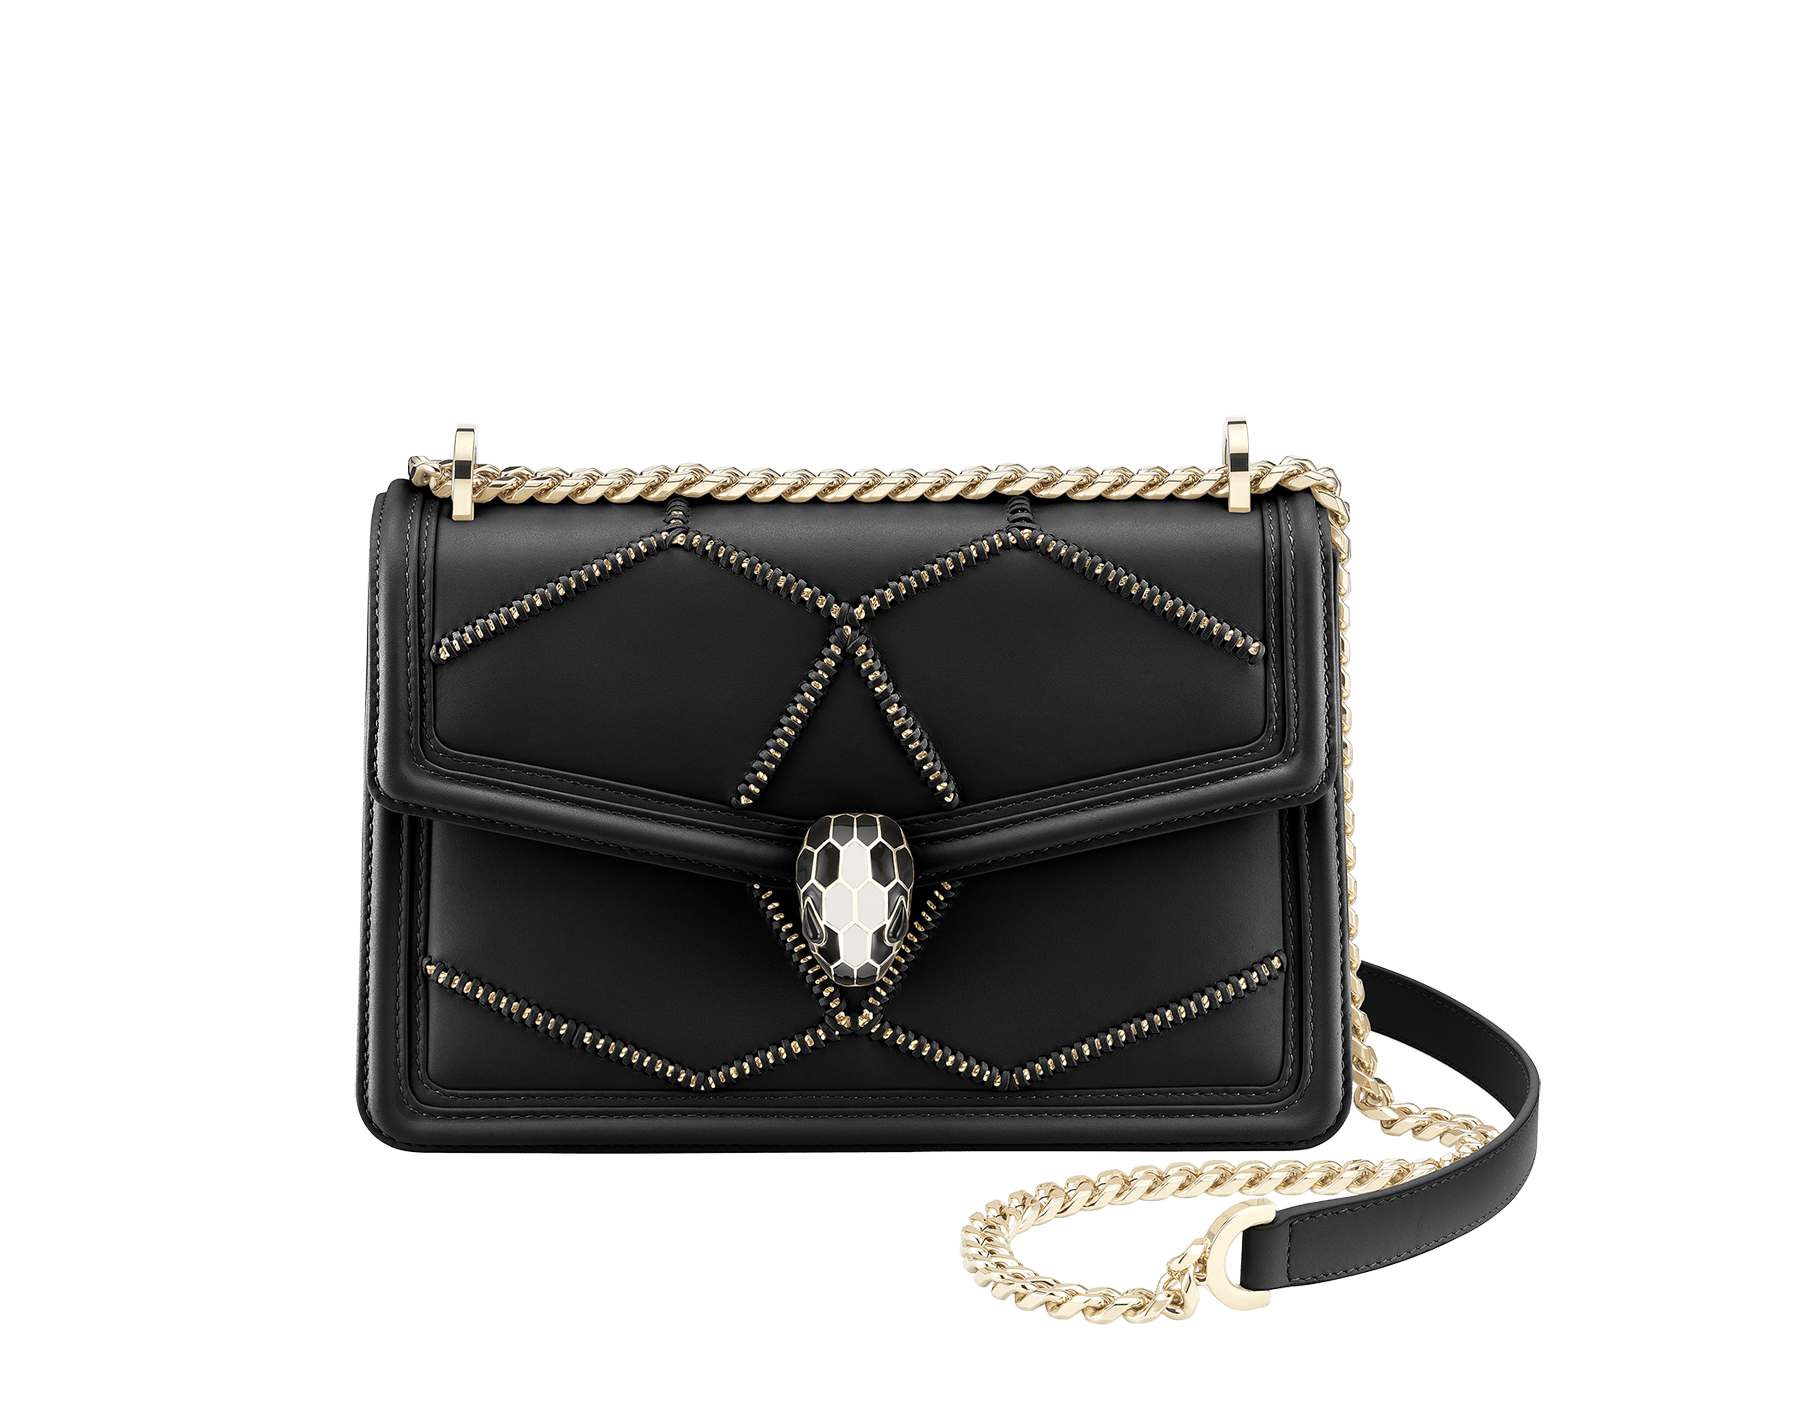 Serpenti Diamond Blast shoulder bag in white agate smooth calf leather with geometric chain motif in light gold finishing.Snakehead closure in light gold plated brass decorated with black and white enamel, and black onyx eyes. 922-NGC image 1